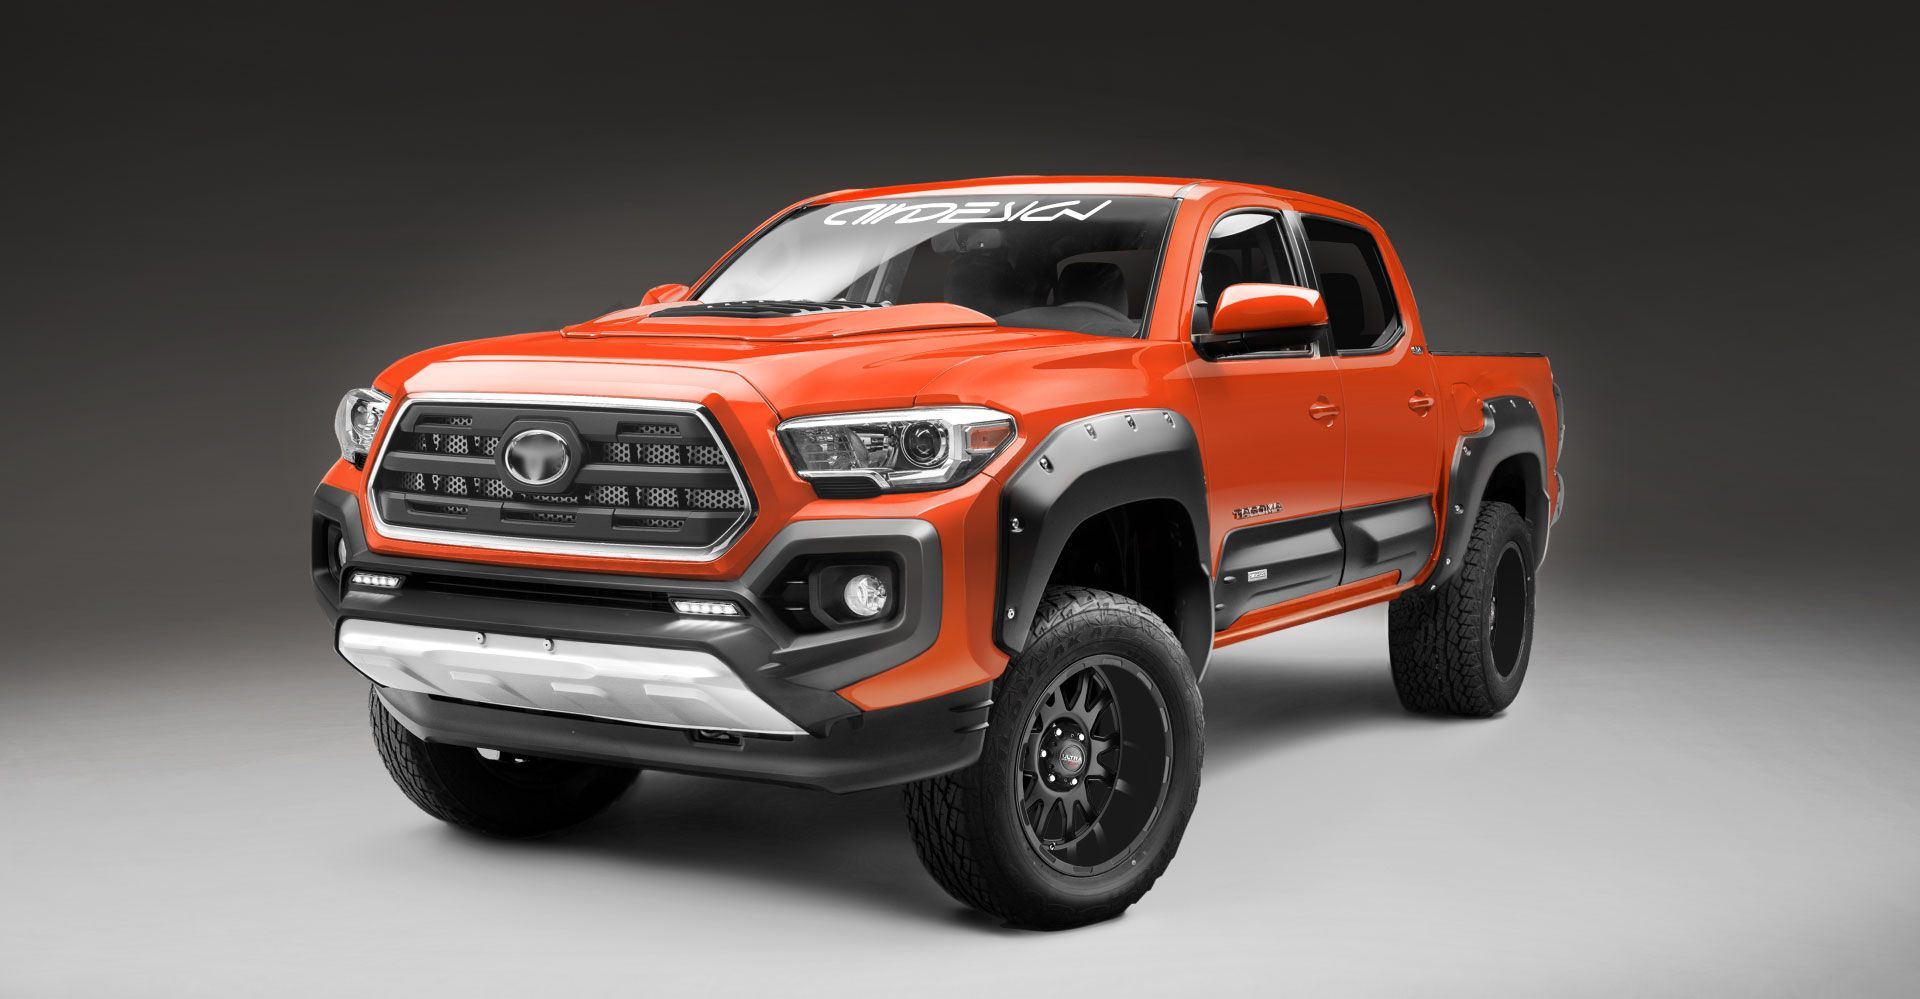 Toyota tacoma air design usa the ultimate accessories toyota tacoma air design usa the ultimate accessories collection for off road and street sciox Image collections